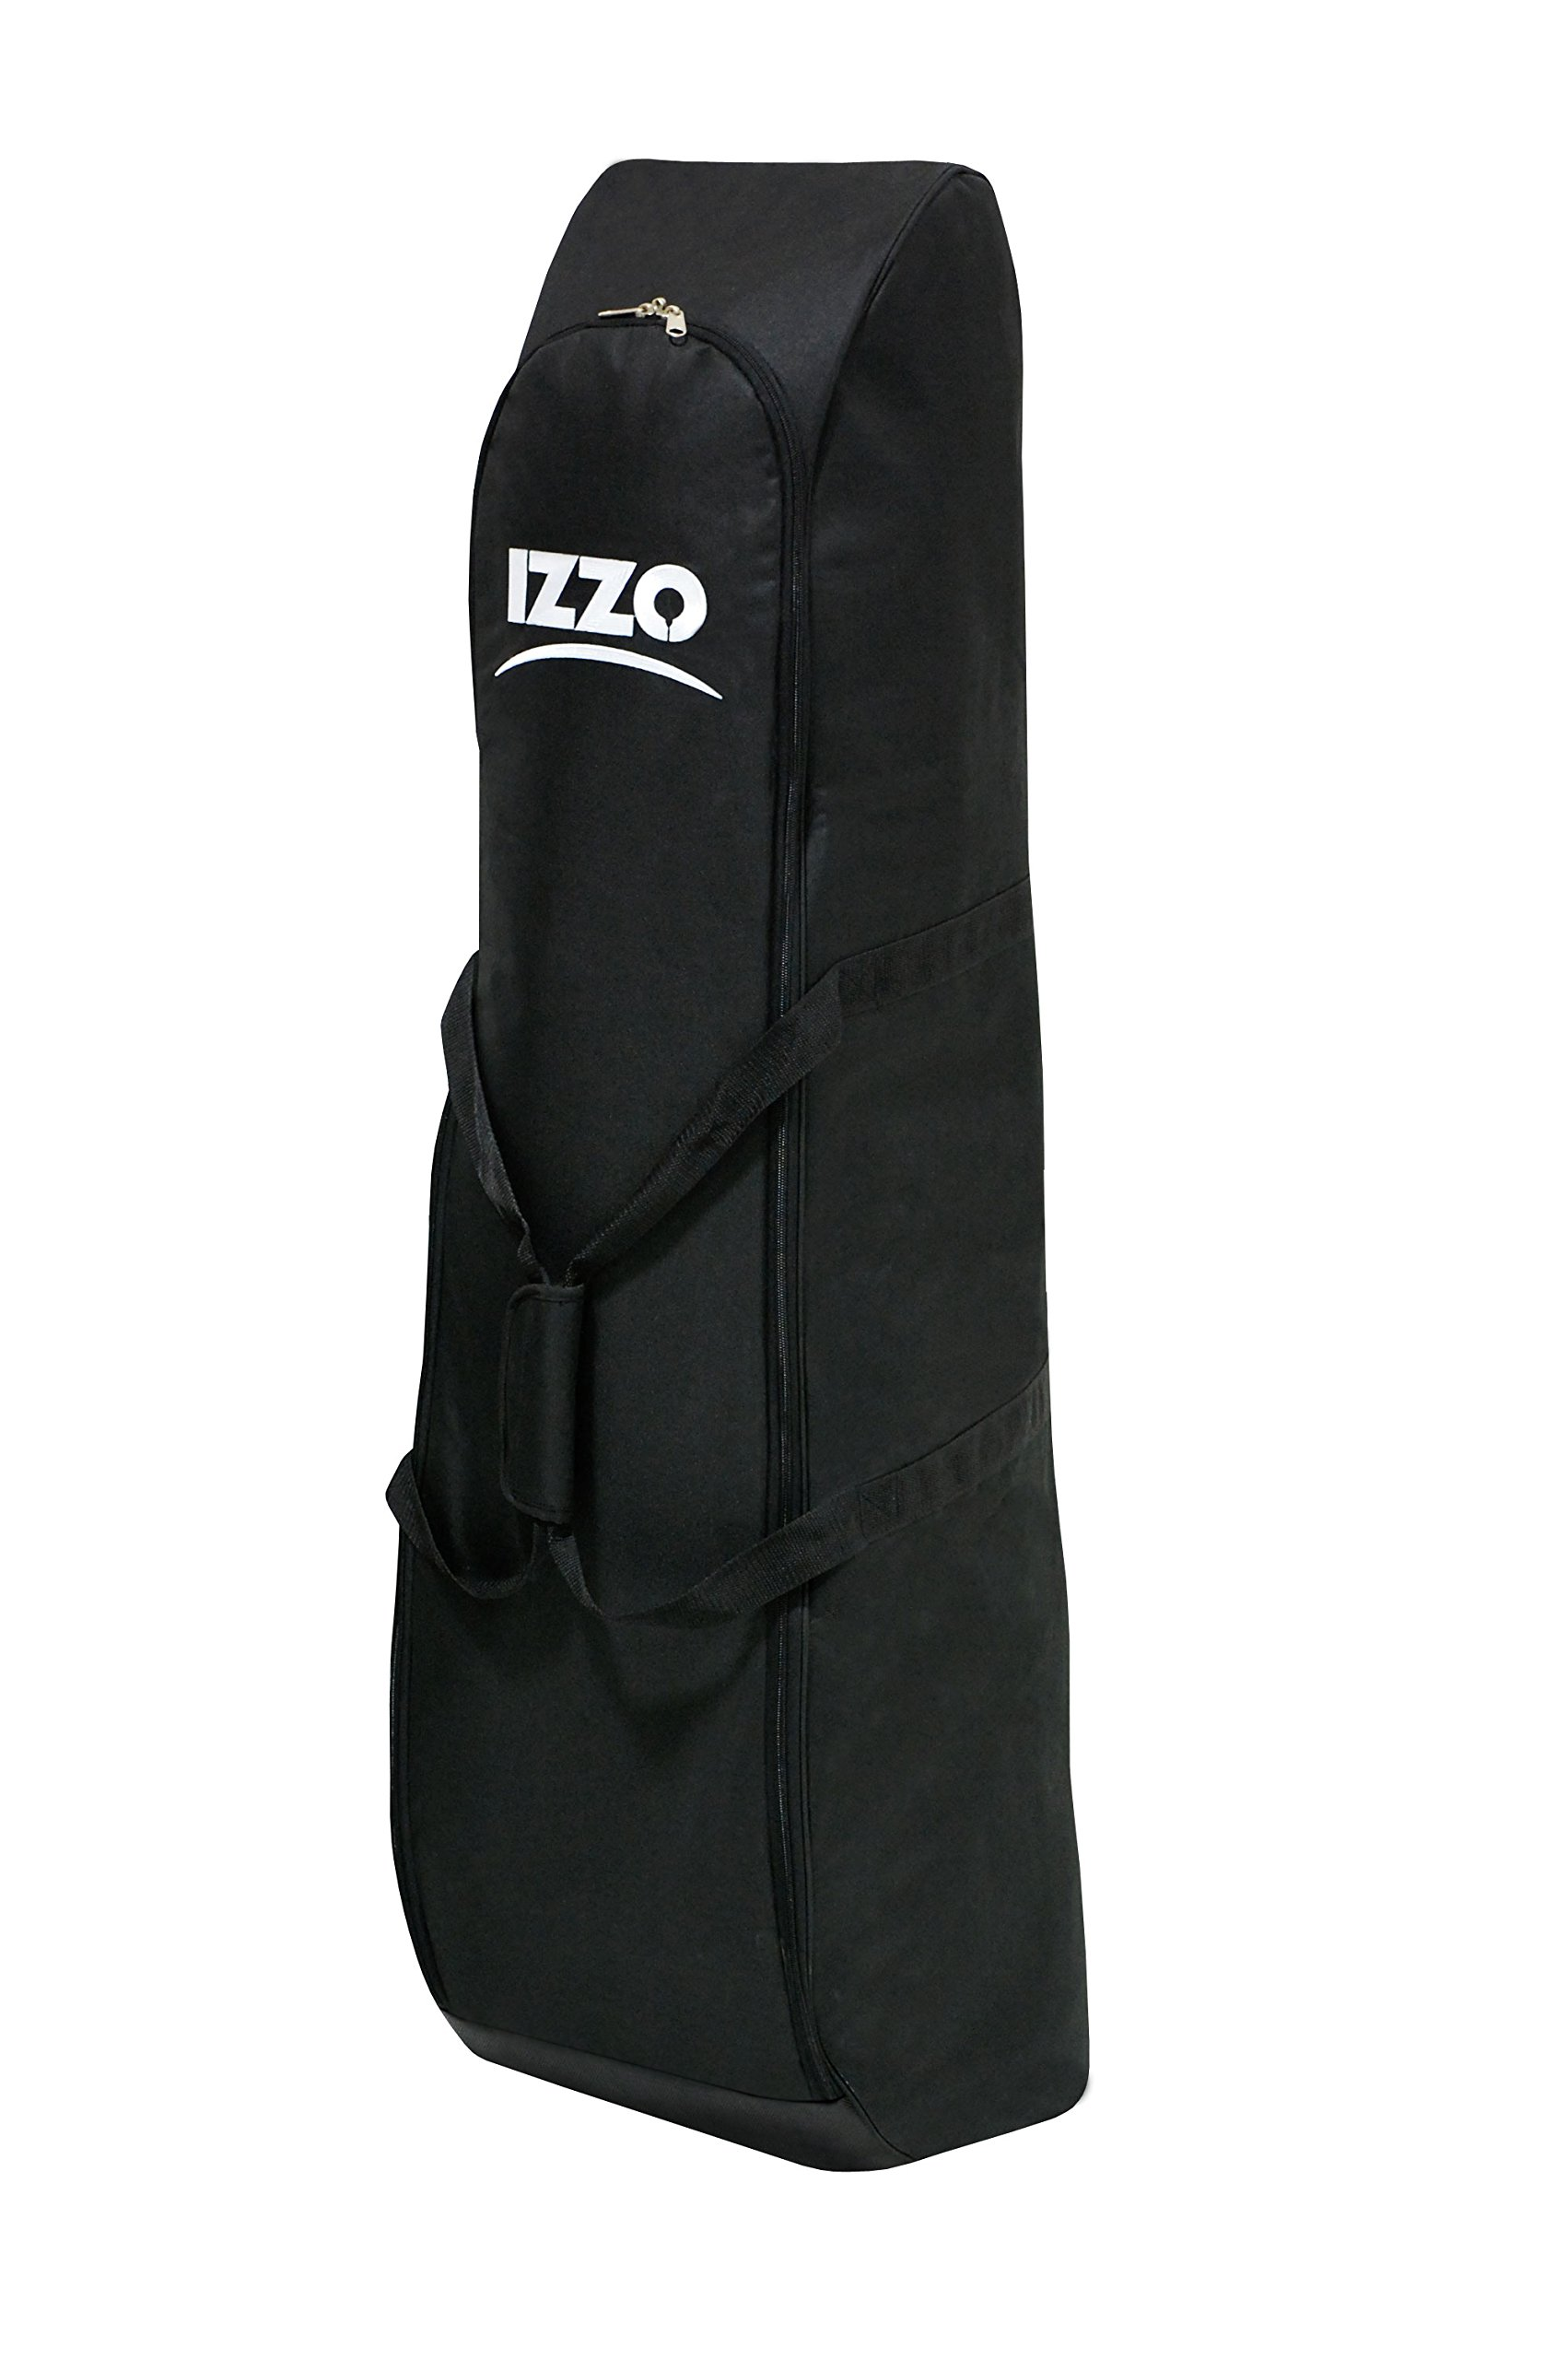 Izzo Golf Padded Golf Travel Cover by IZZO Golf